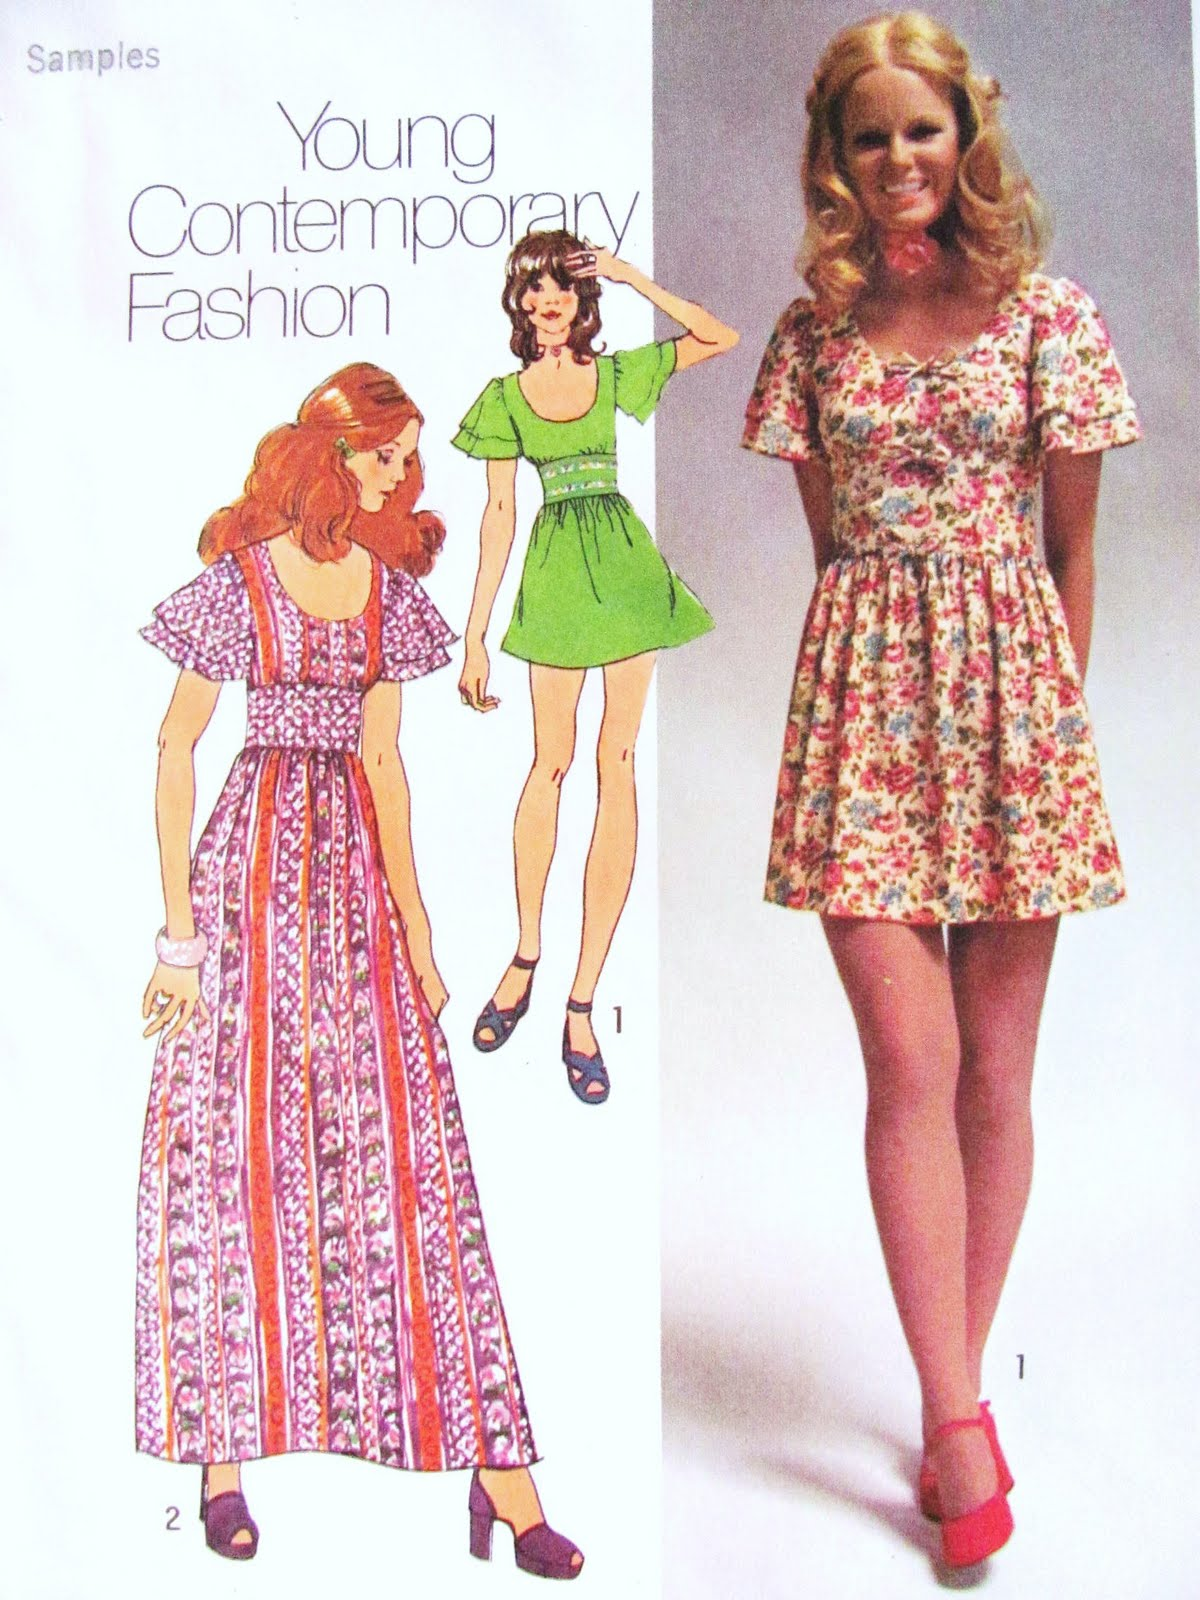 Prom dress styles from 1972